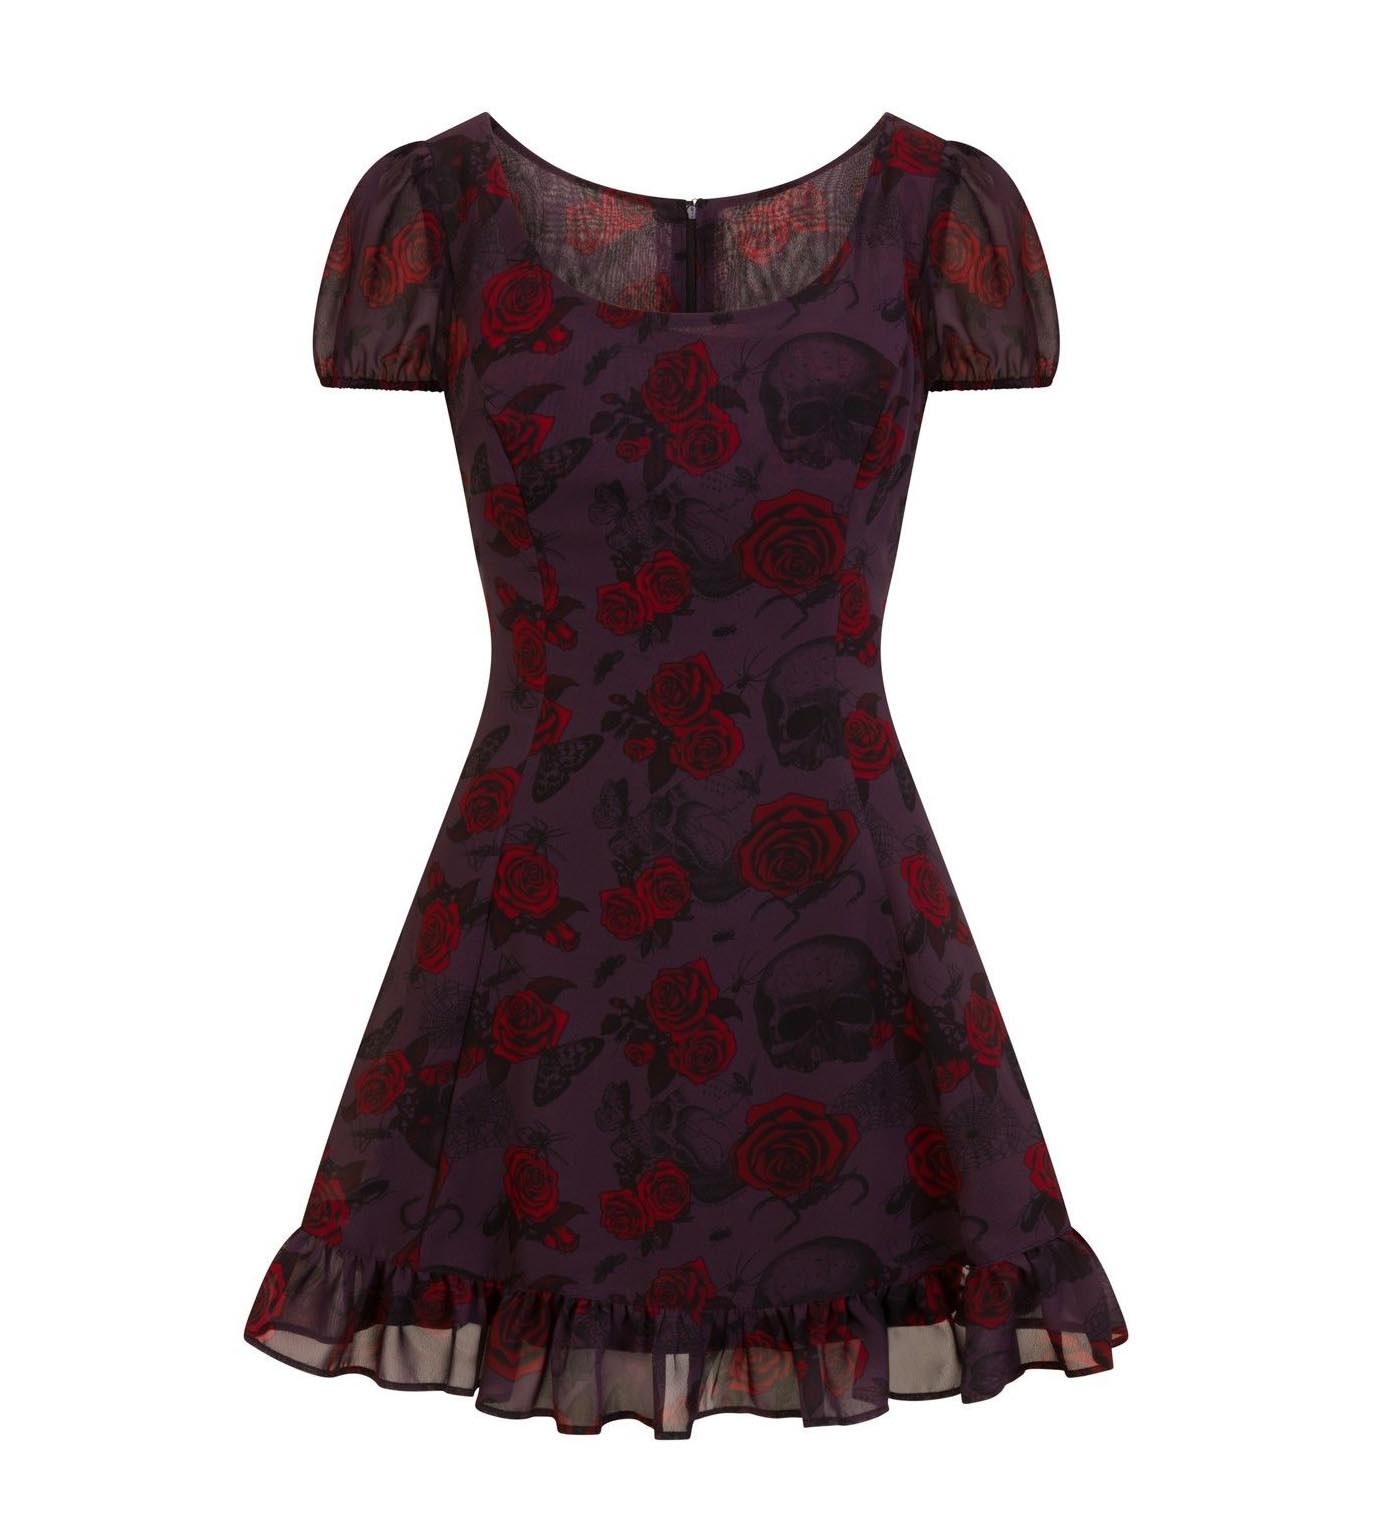 Hell-Bunny-Goth-Floaty-Mini-Dress-BUGS-amp-ROSES-Skulls-Butterfly-Purple-All-Sizes thumbnail 47